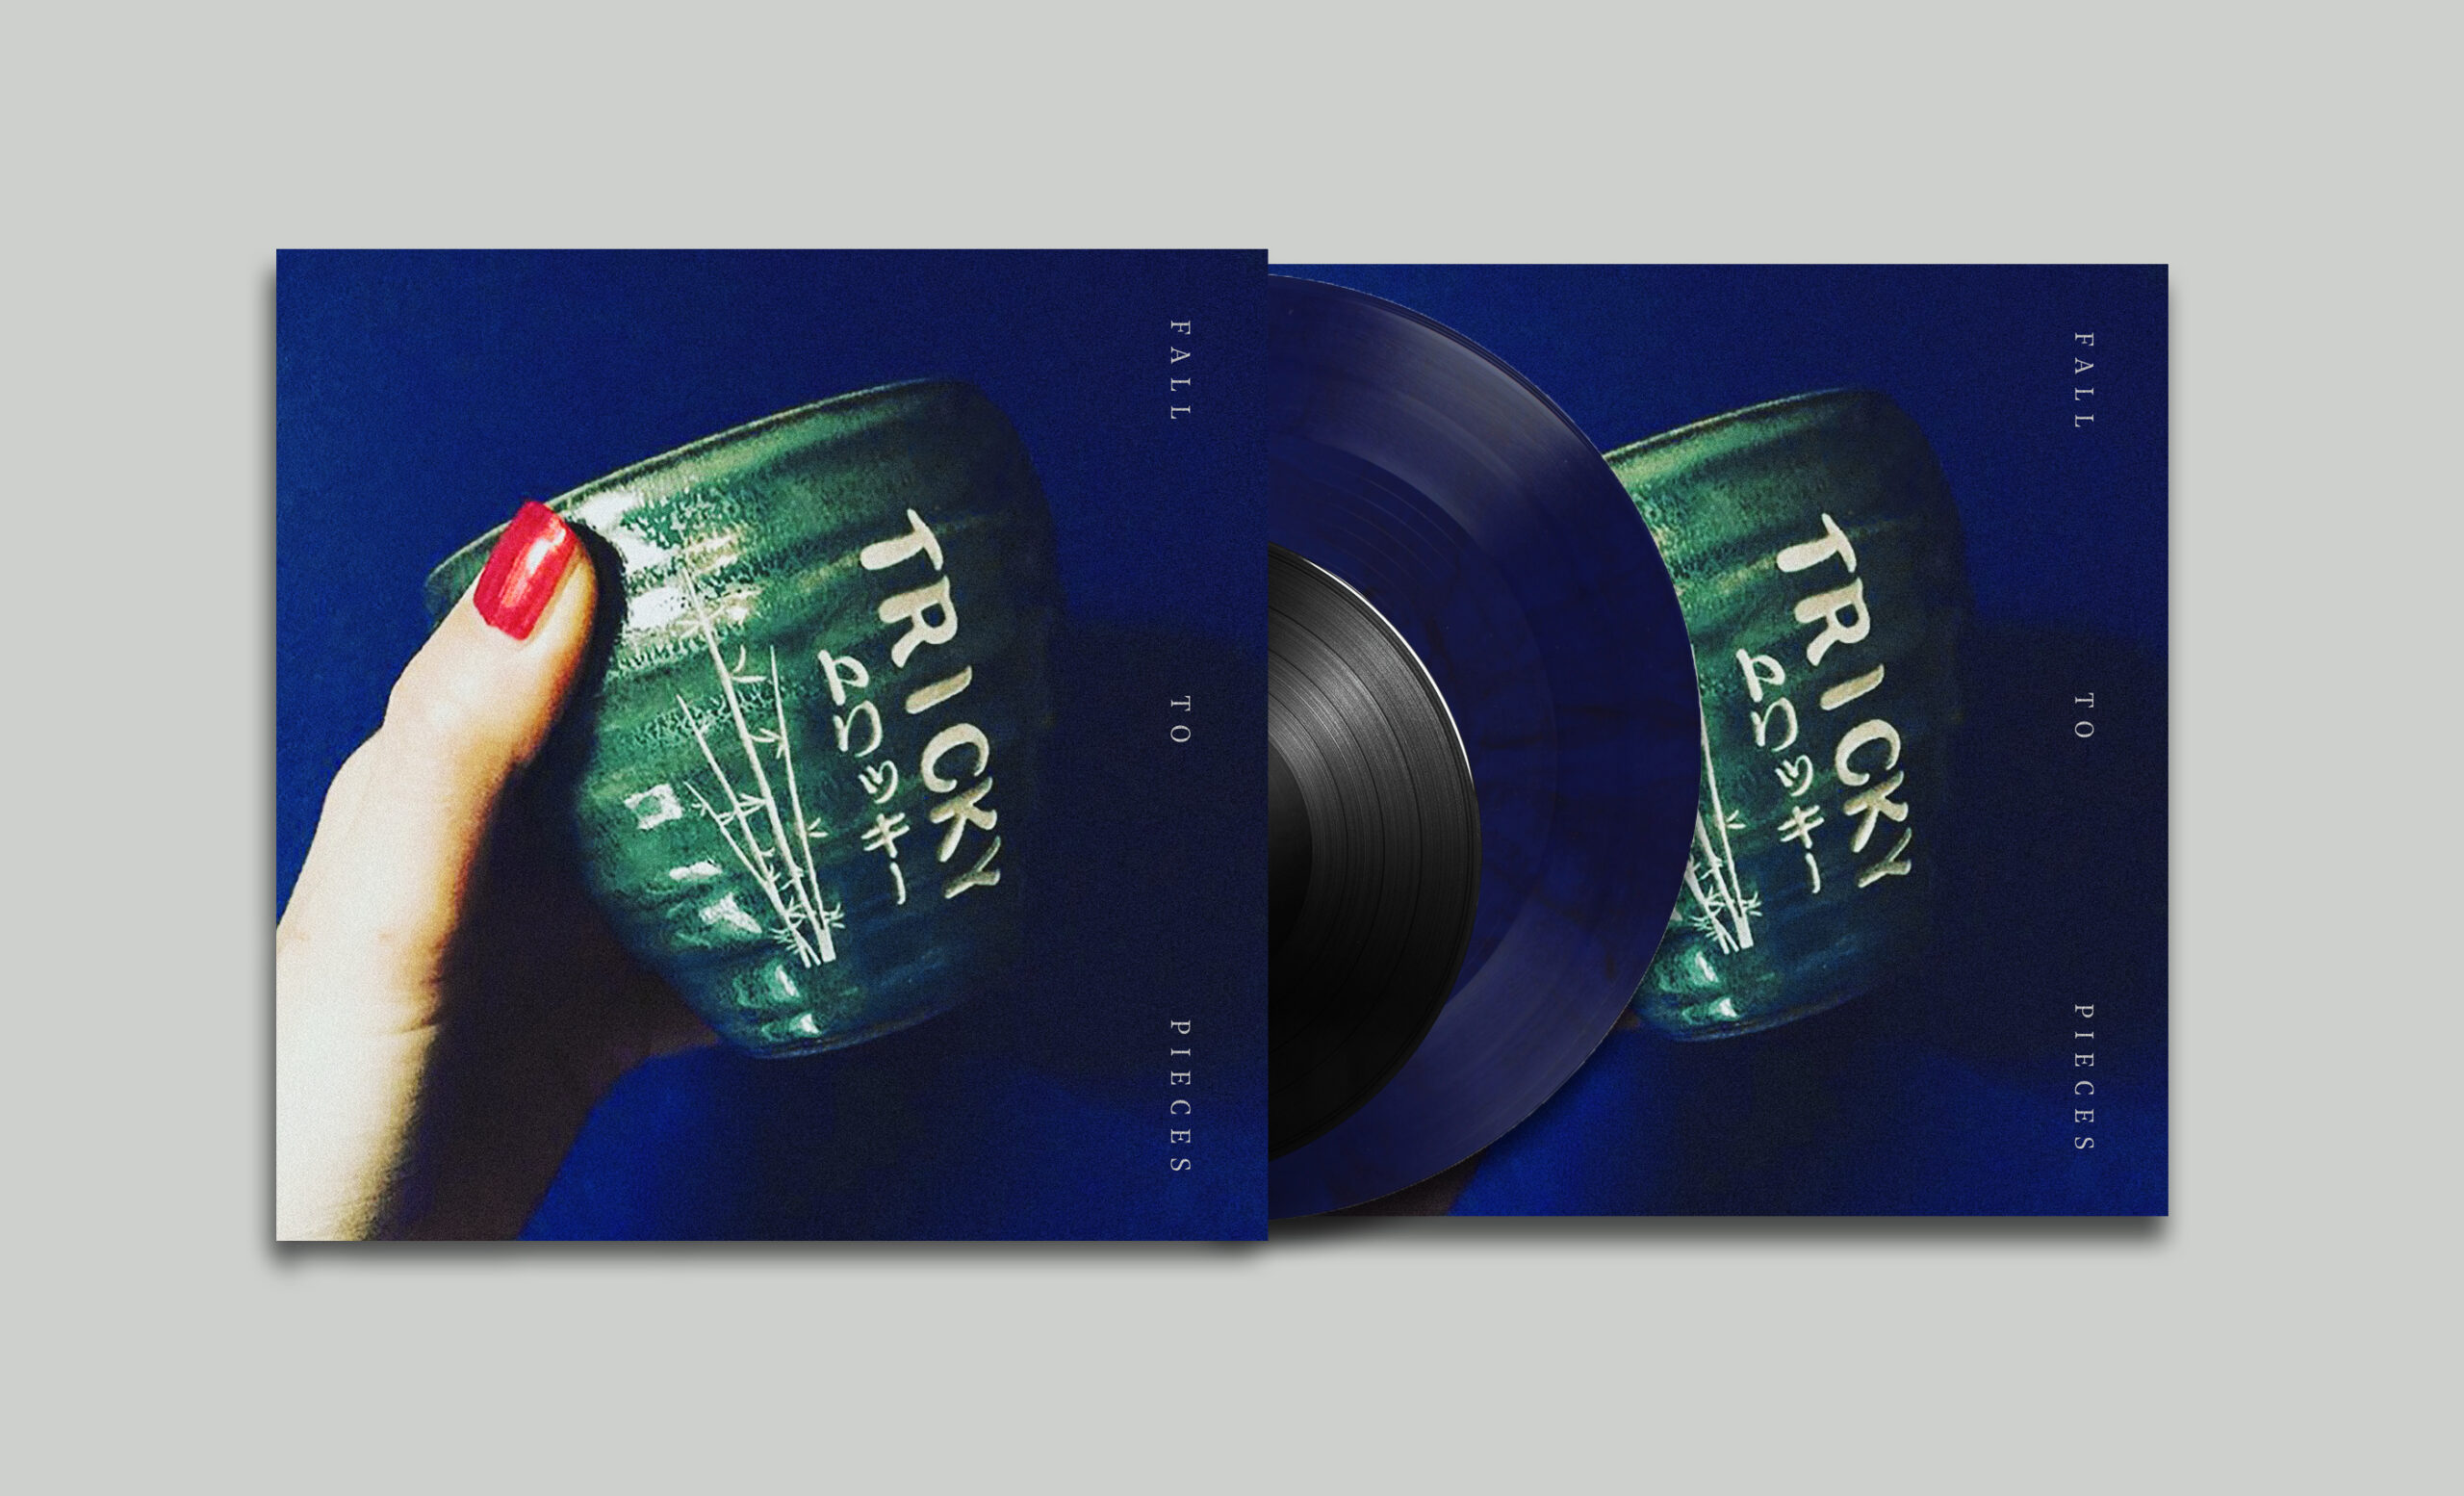 TRICKY ANNOUNCES NEW ALBUM + DINKED EDITION VINYL